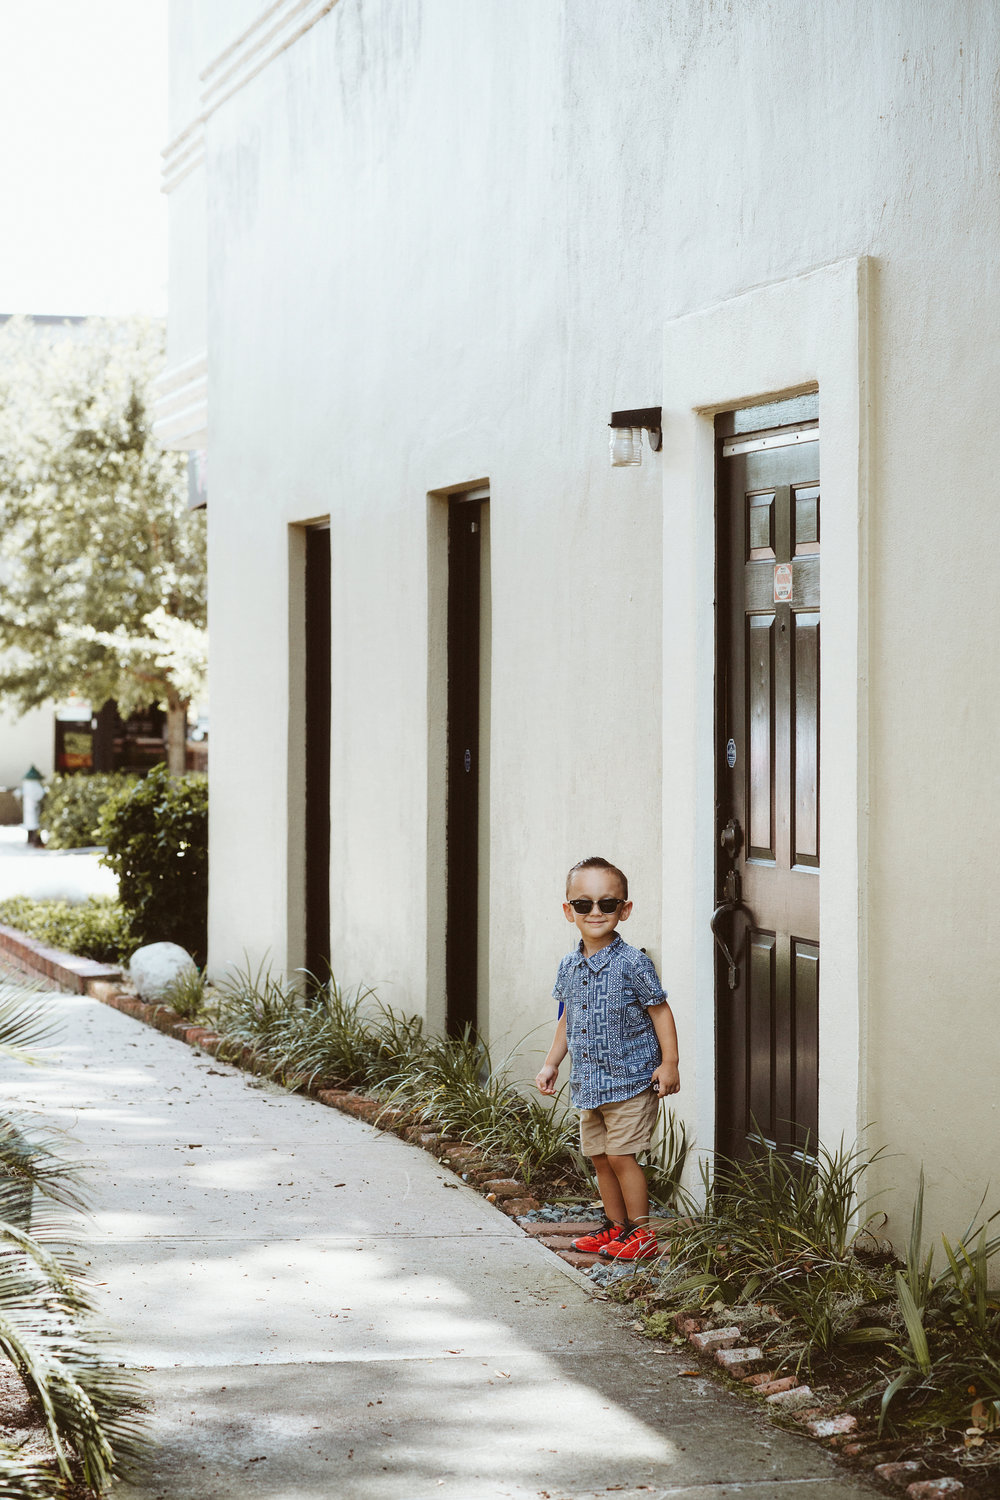 Orlando| Mommy and Me Fashion | Zara | Vanessa Boy | vanessaboy.com |-2.com |final.jpg